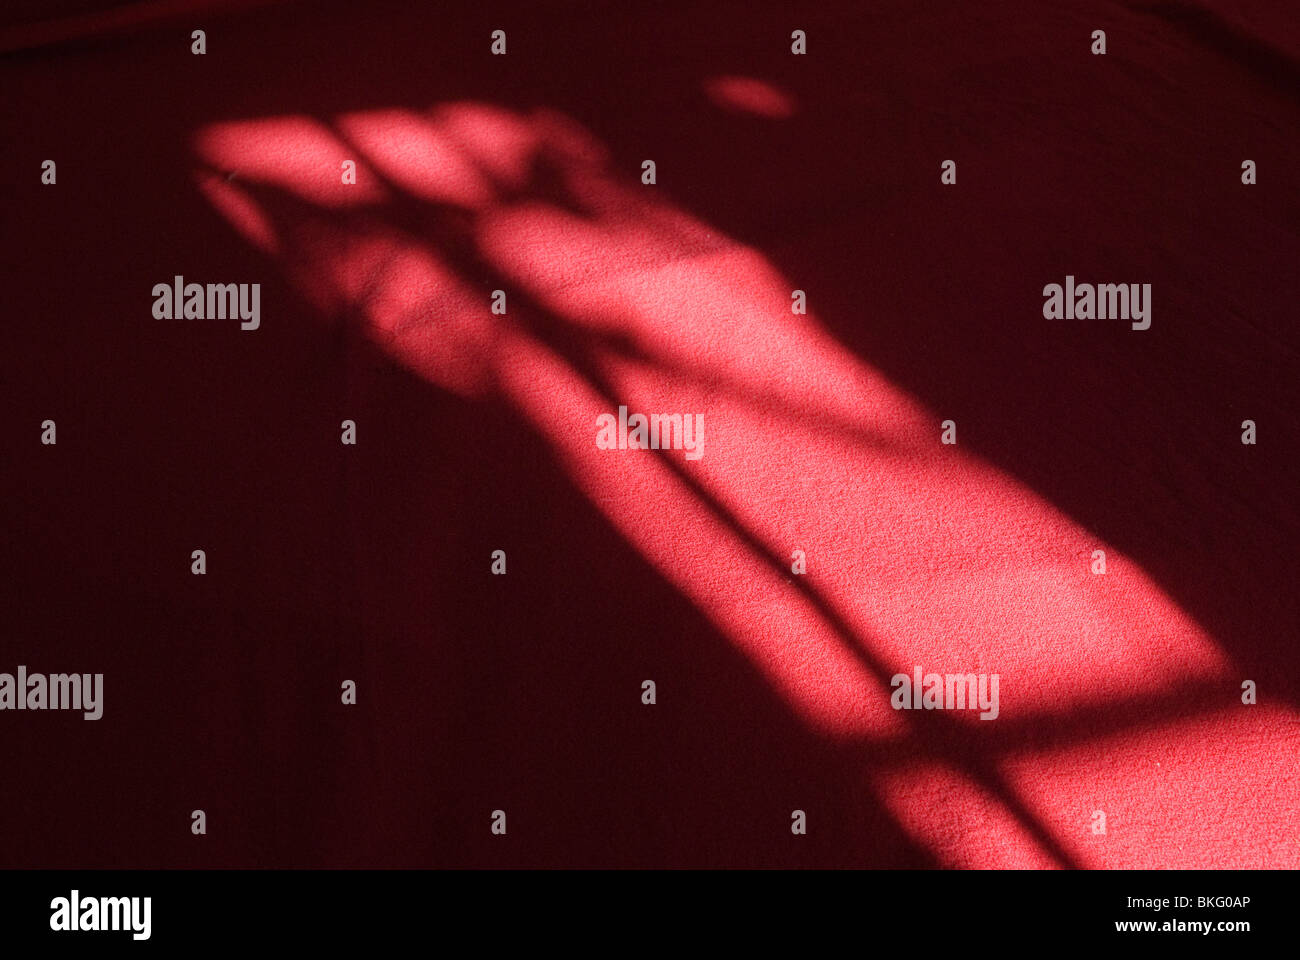 Interior bedroom detail. Pattern from light through curtain windows onto red bedspread. - Stock Image